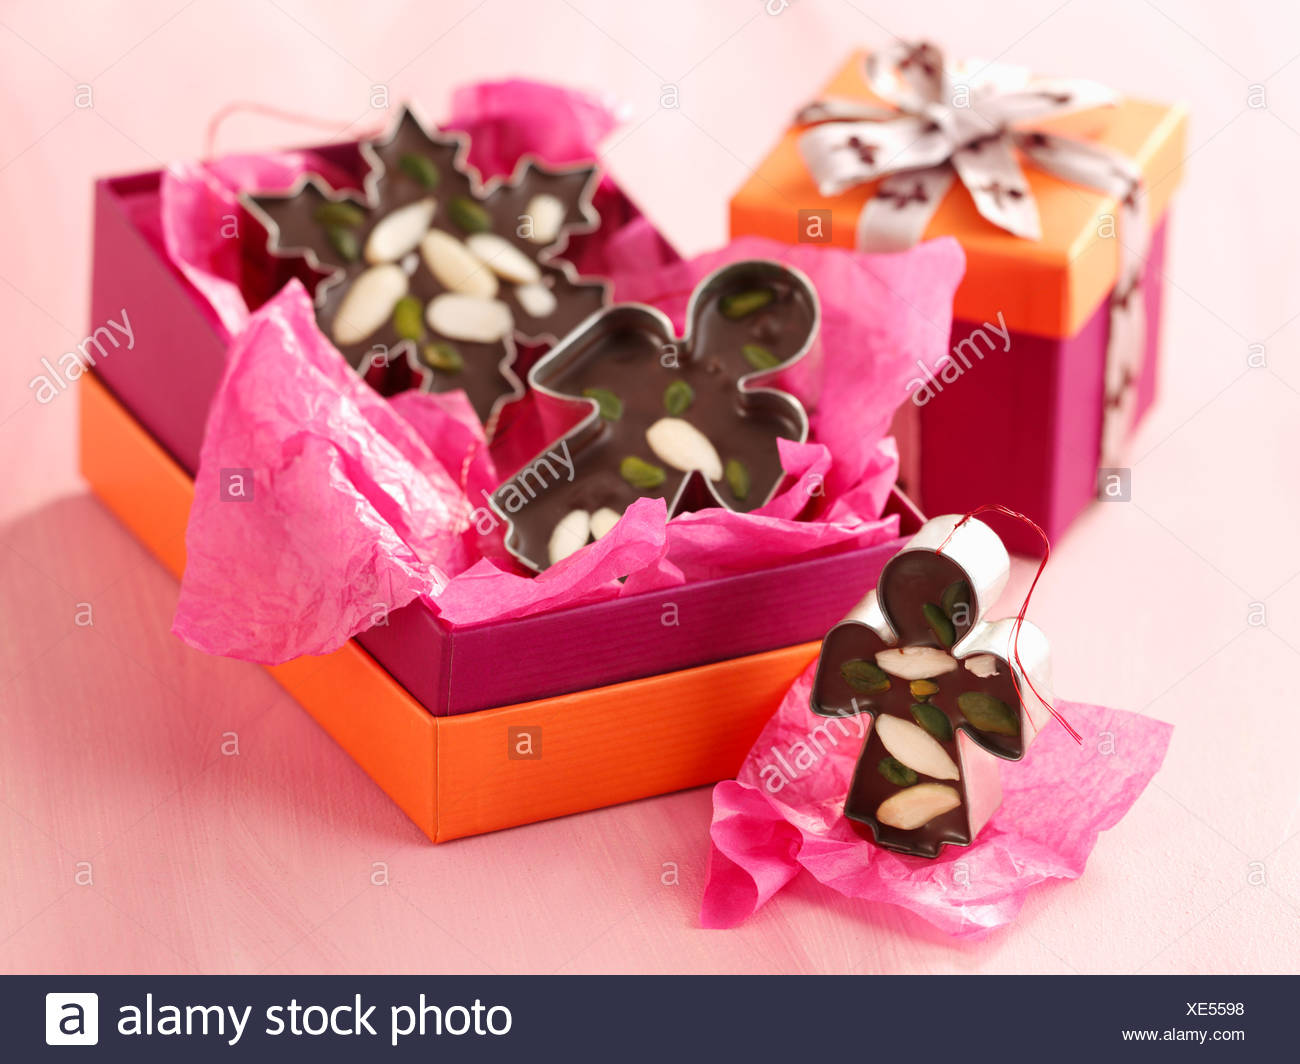 Nuts Component Homemade Chocolate Stock Photos & Nuts Component ...